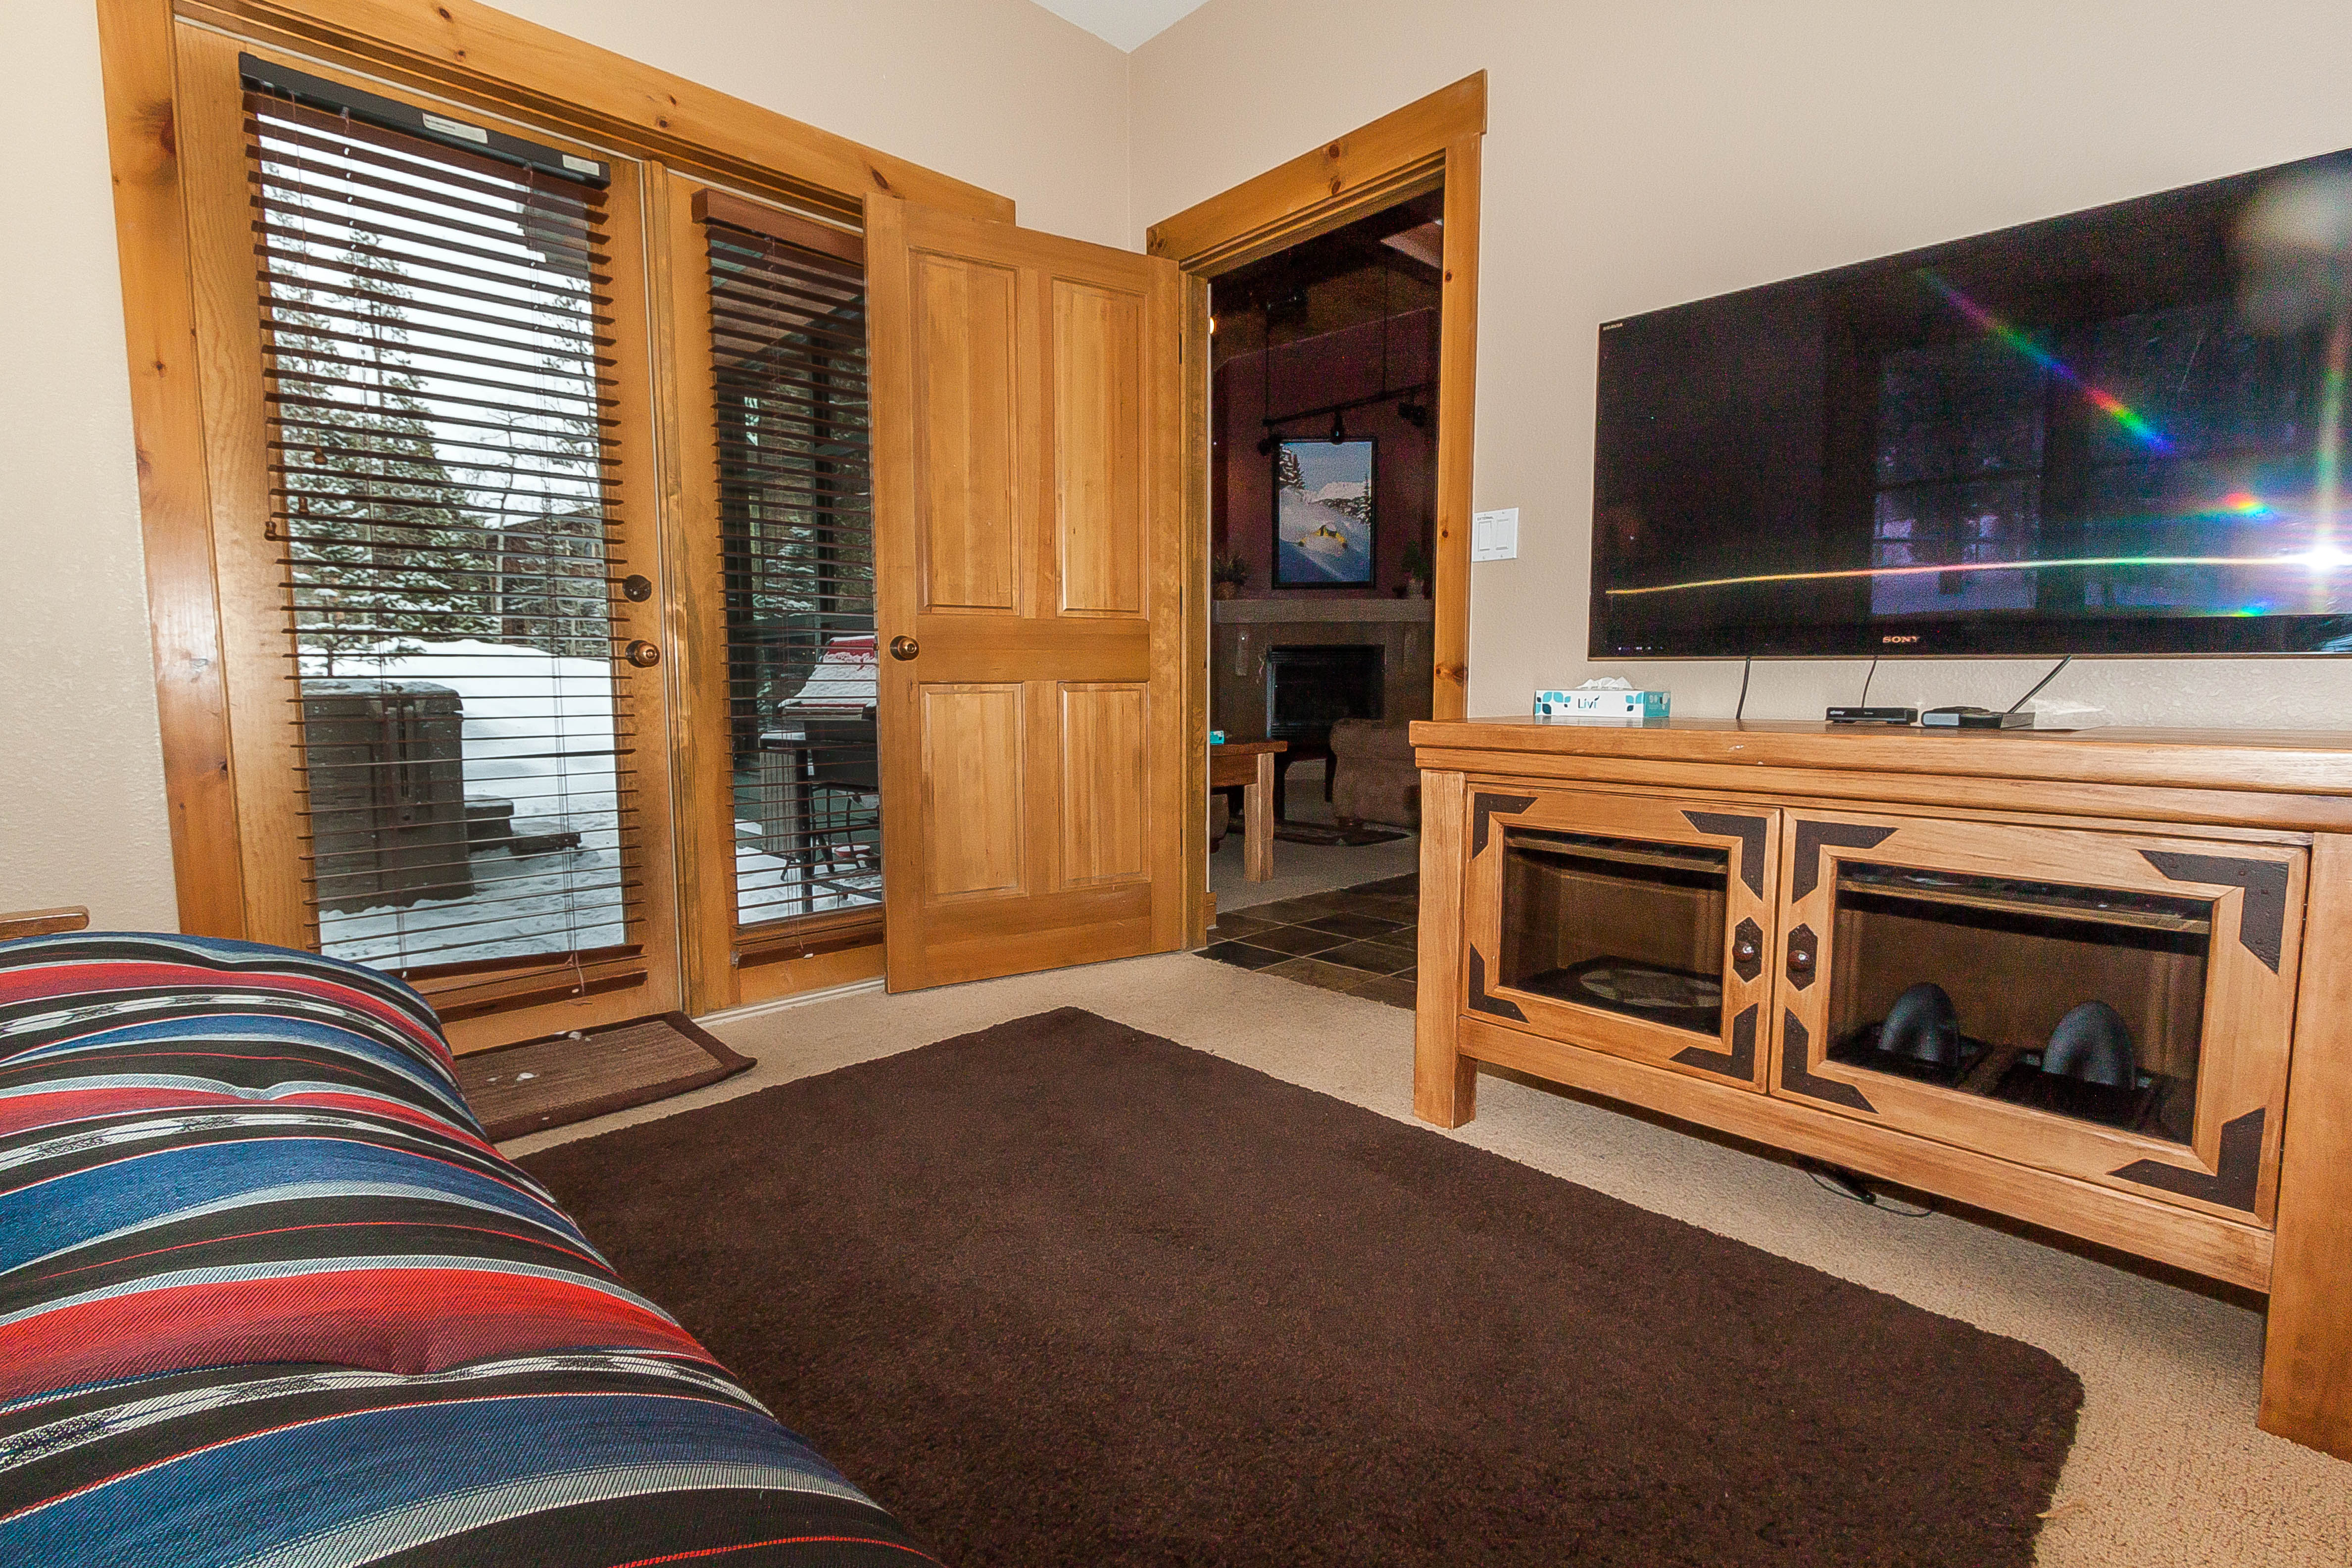 The third guest bedroom also serves as a den with a futon, a flat screen TV and its own access to the downstairs guest bathroom. Head out to the private patio with a hot tub.